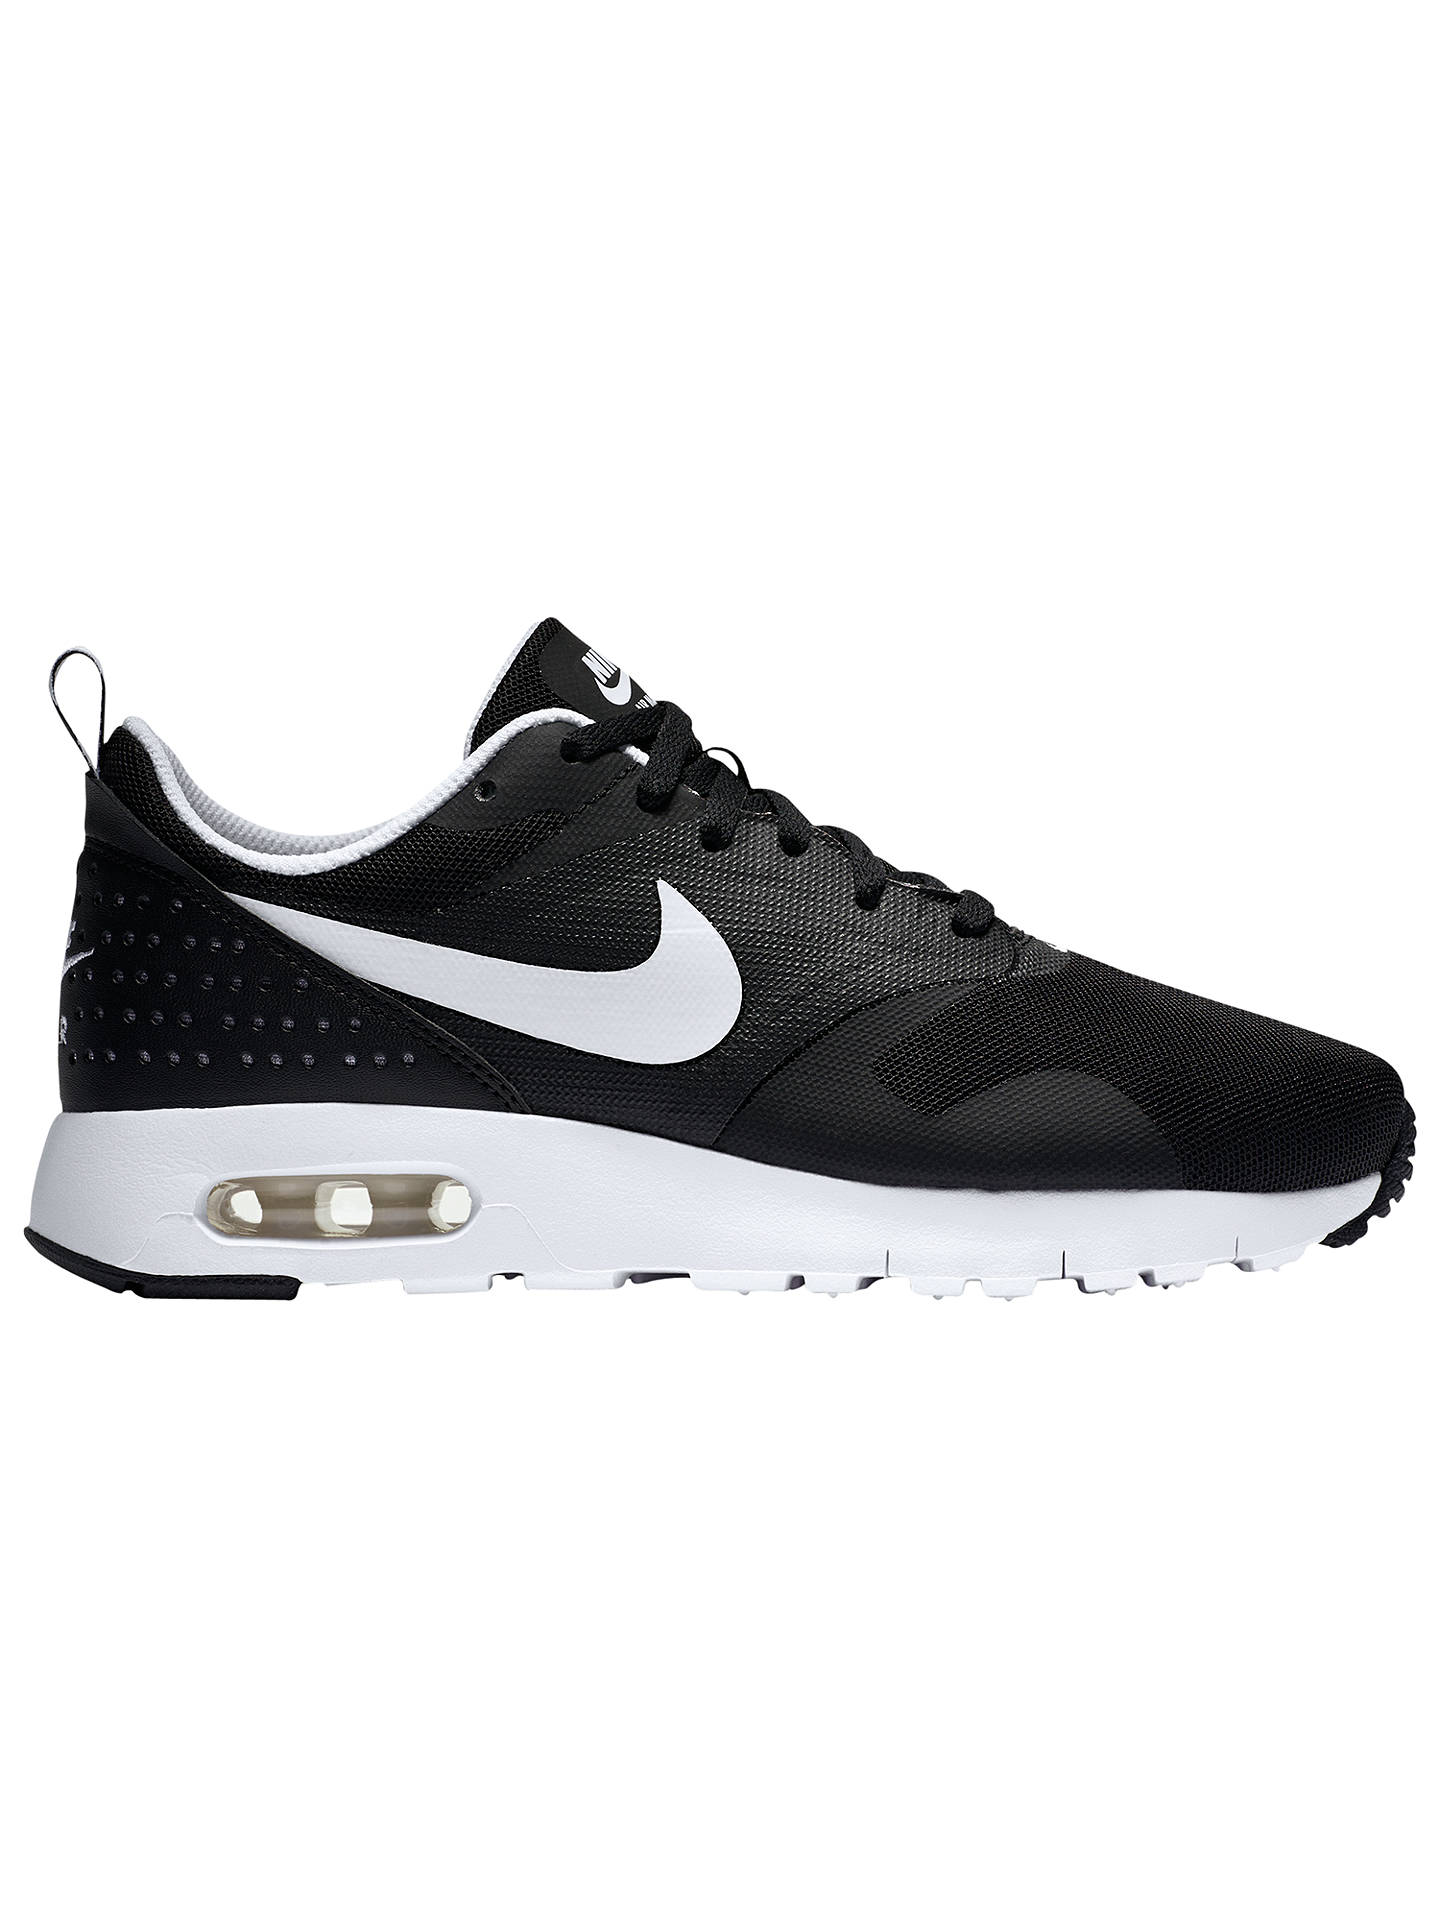 best sneakers afe81 3cbec Buy Nike Children s Air Max Tavas Sports Trainers, Black White, 3 Online at  ...